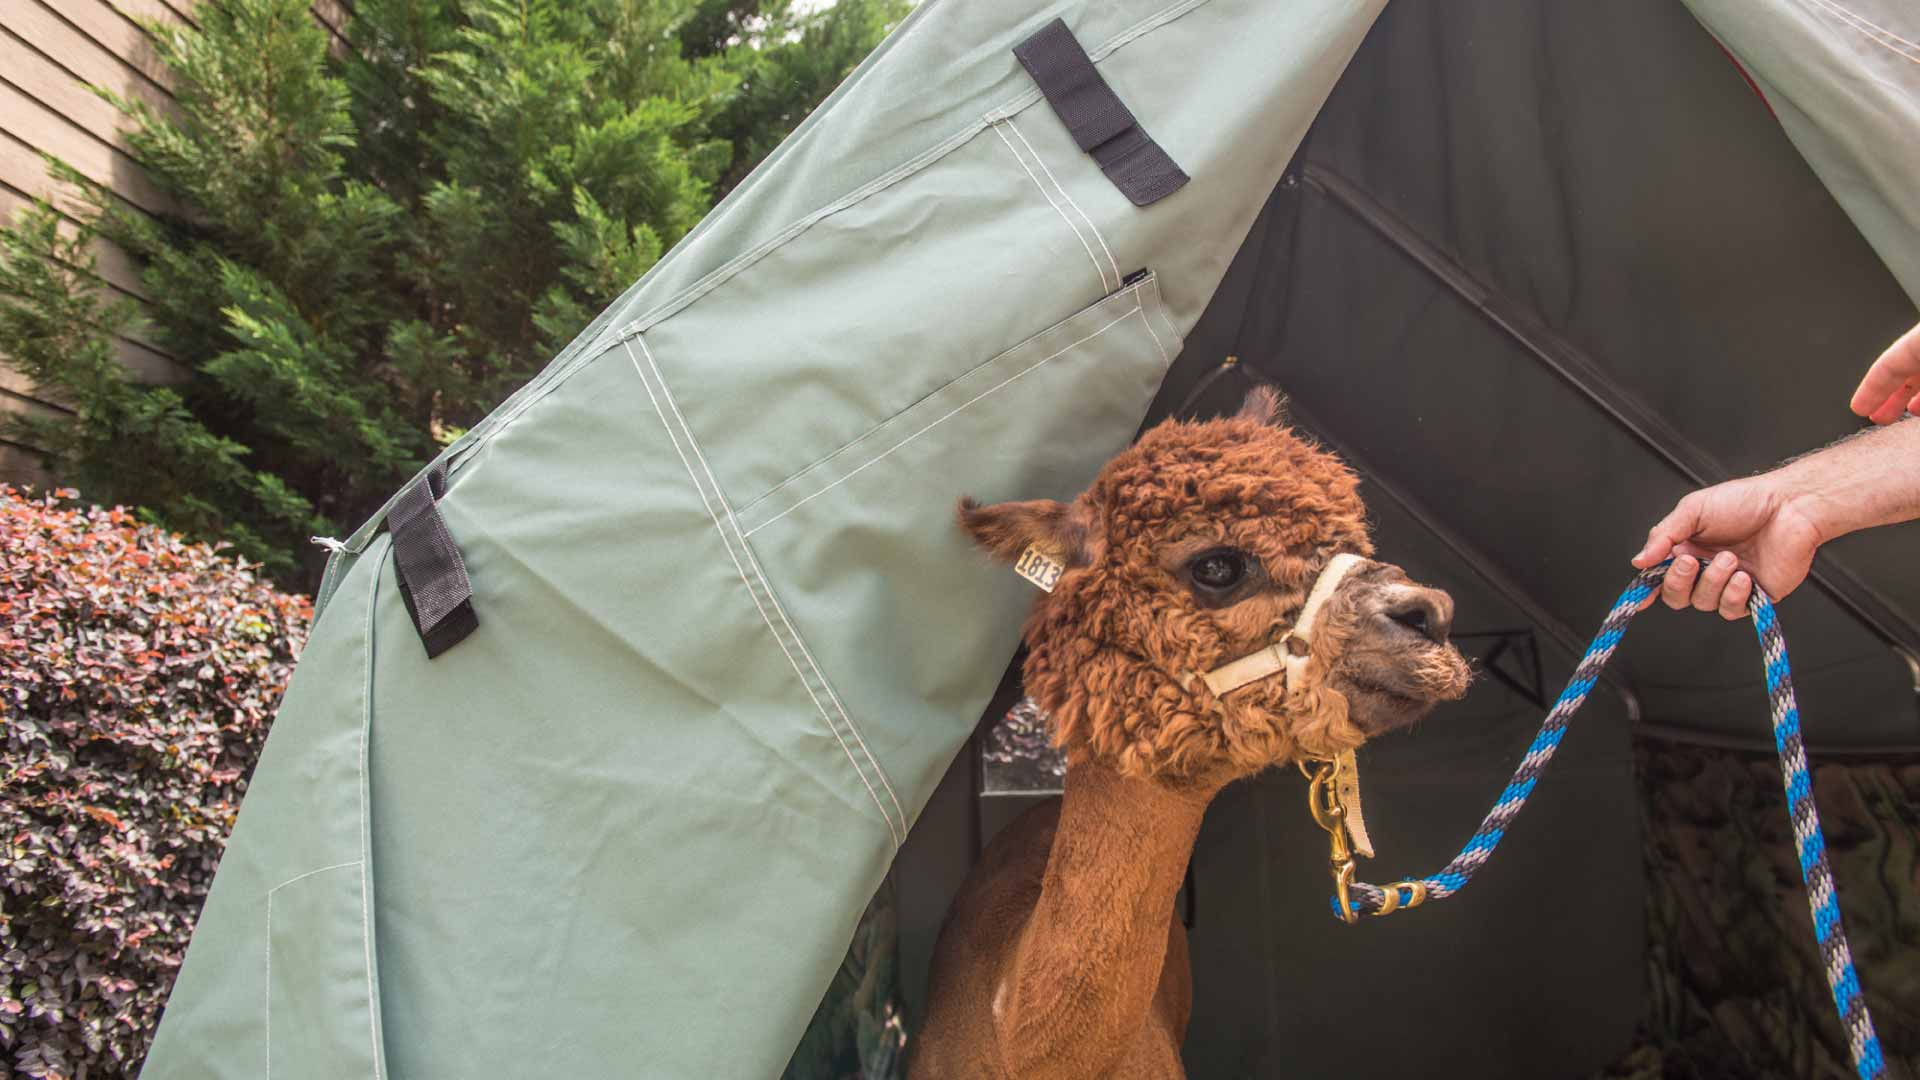 Tent with llama